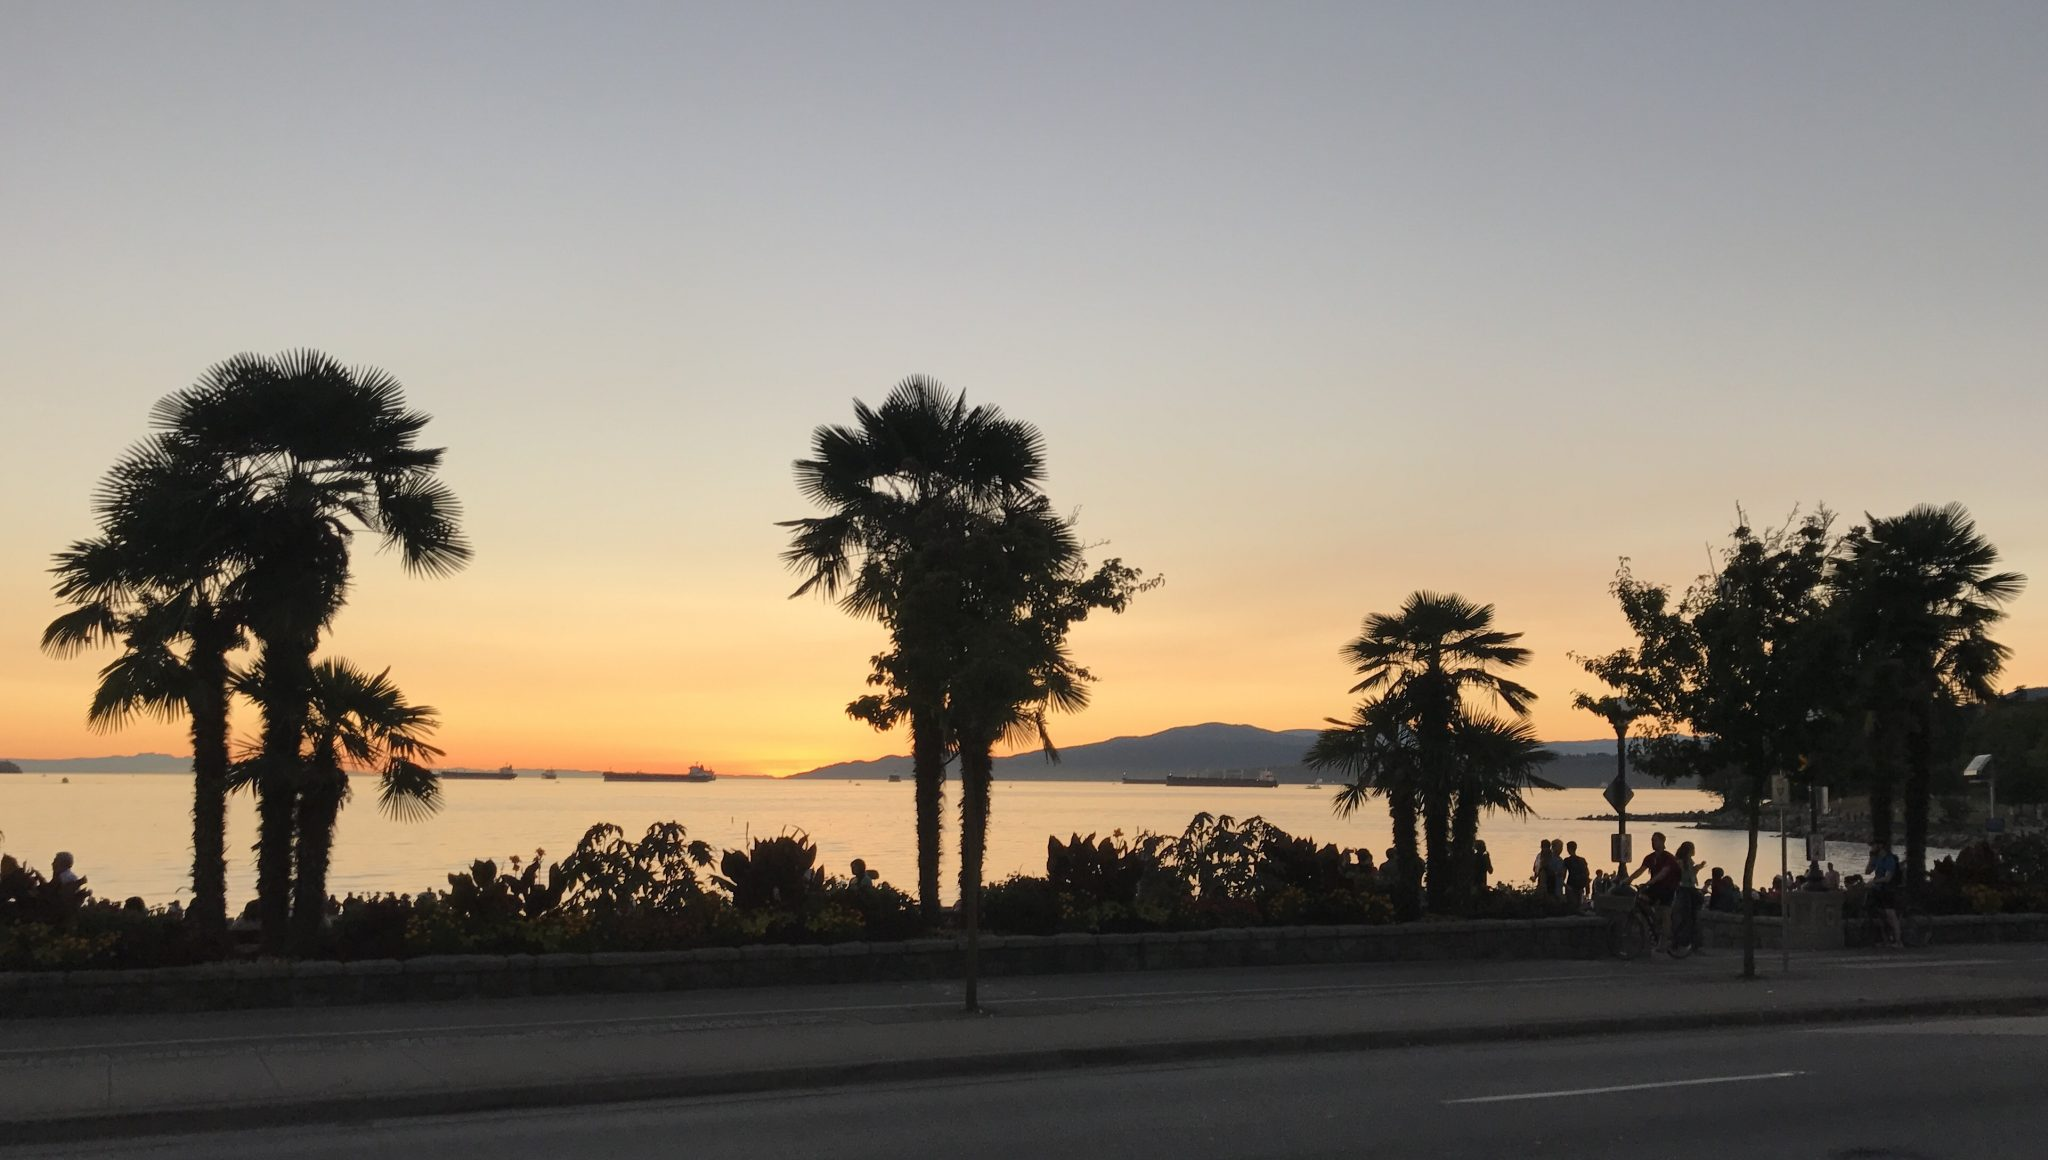 Solnedgang ved English Bay i Vancouver